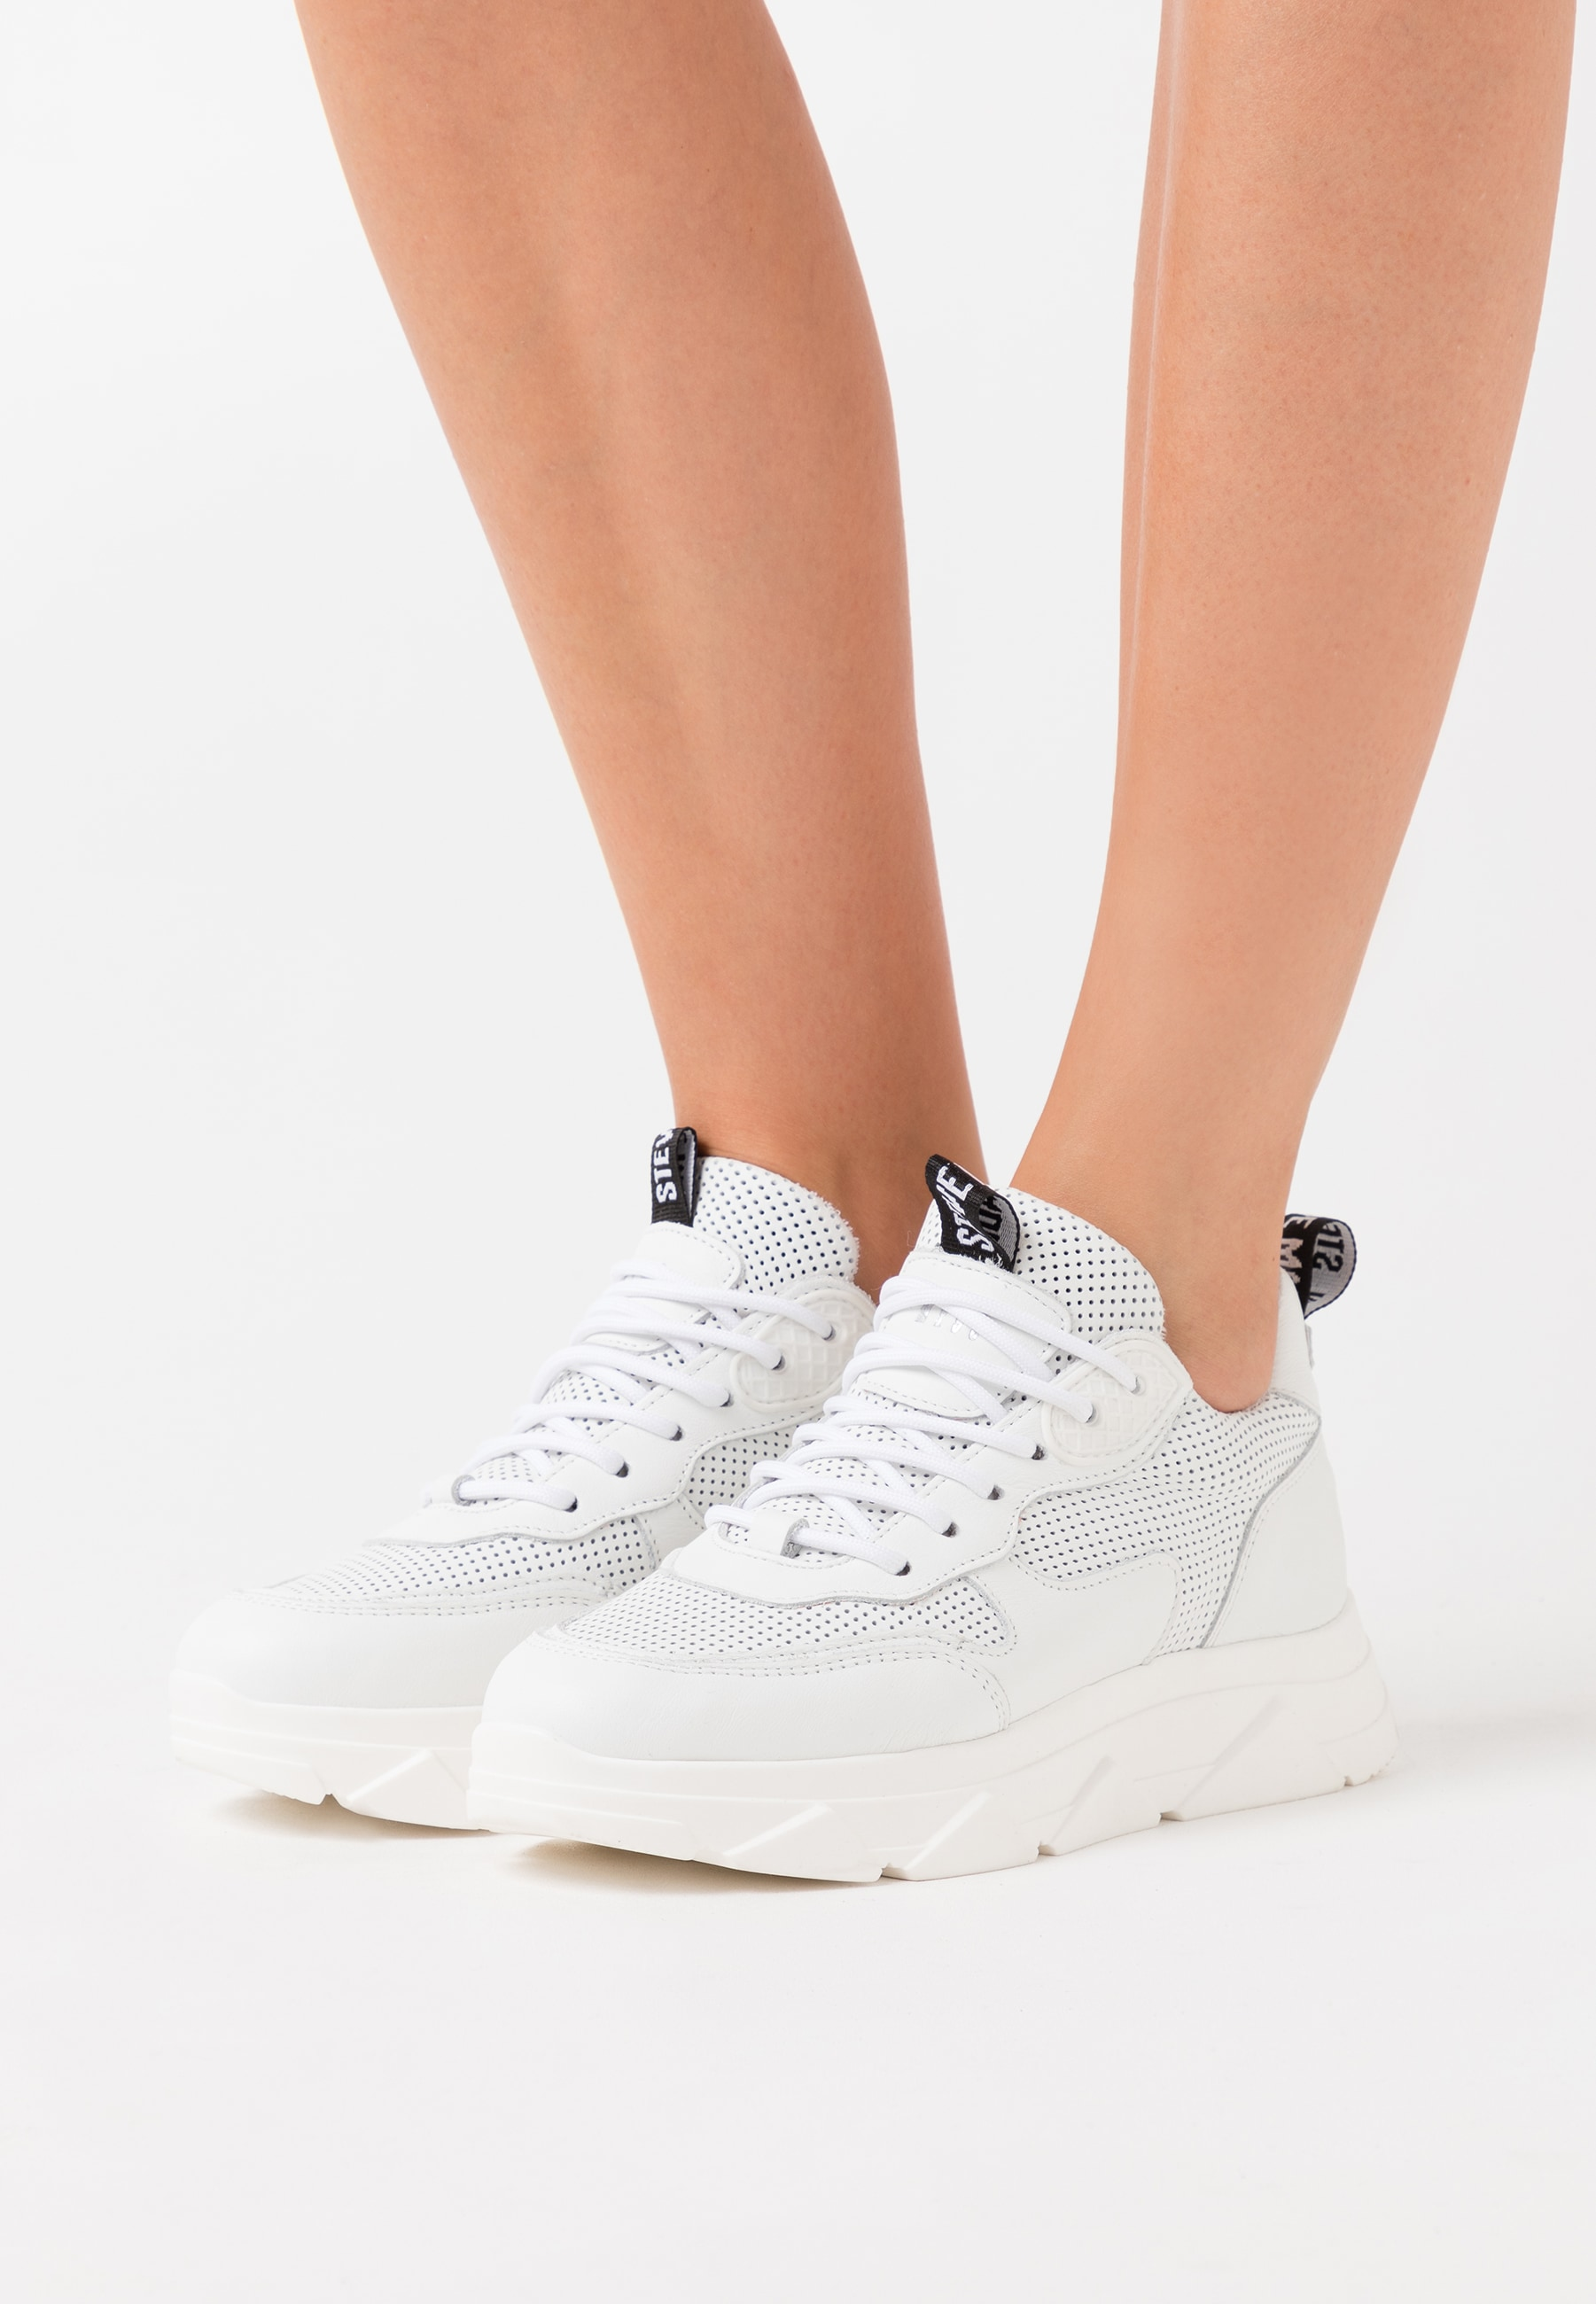 PITTY - Trainers by Steve Madden — Thread